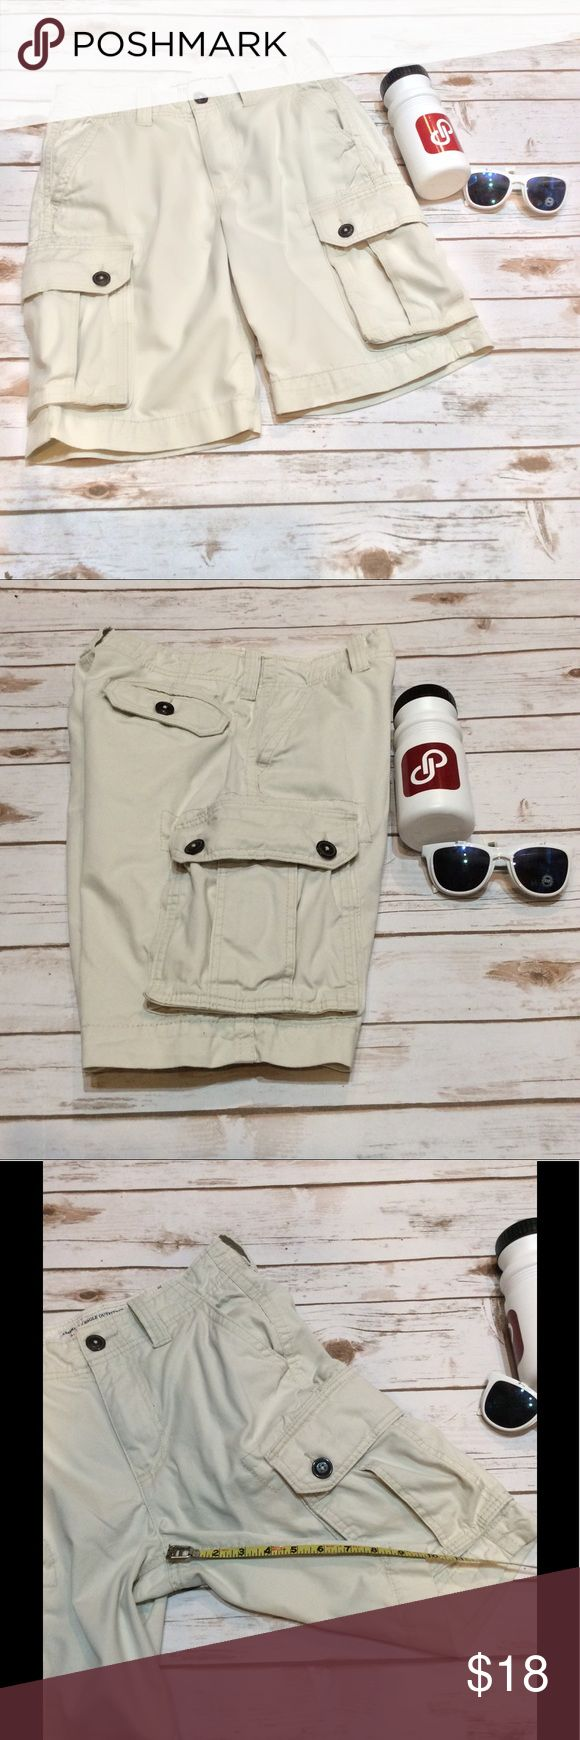 "AE Outfitters Boy's/Men's Cargo Shorts Size 28 American Eagle Outfitters Classic Cargo Khaki Shorts, Boys/Men's Size 28. Material: 100% Cotton. Machine Wash Cold. Approximate Measurements Laying Flat: Waist: 15"", Inseam: 10"", Rise: 11"". No Flaws. 🚫 NO TRADES OR LOW BALL OFFERS🚫 A5 American Eagle Outfitters Shorts Cargo"